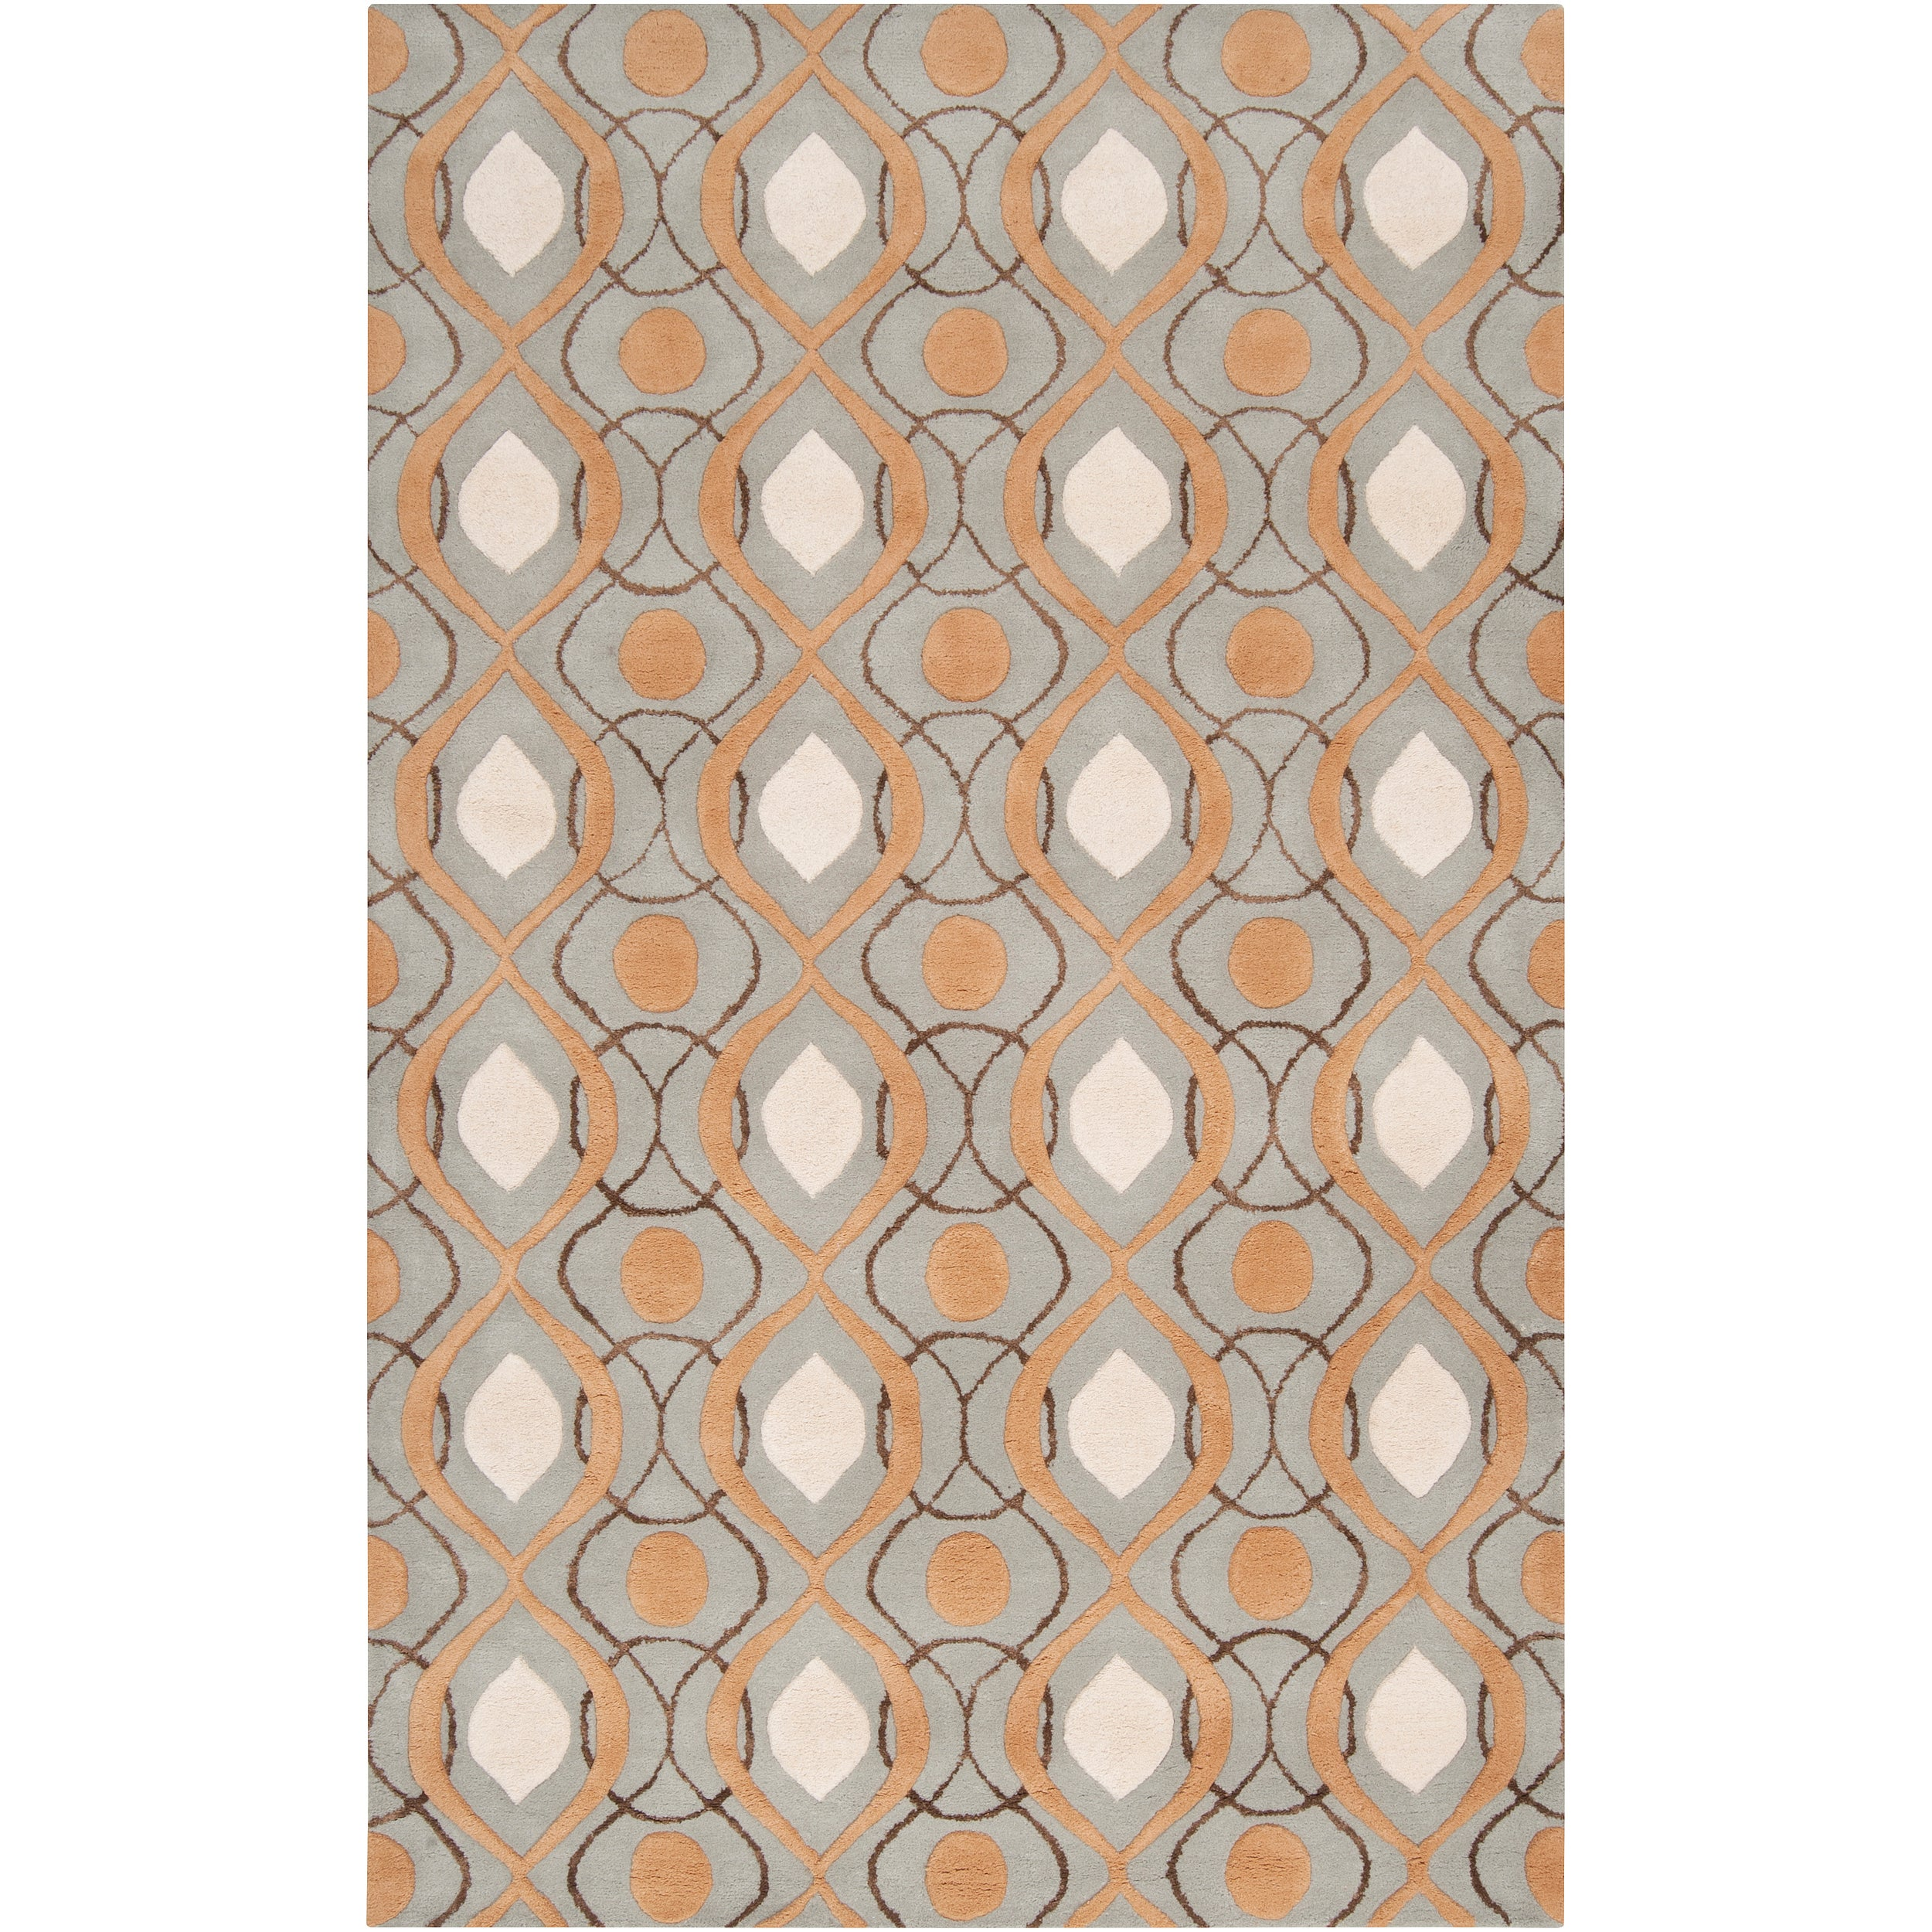 Candice Olson Hand-tufted 'Cane' Gray Moroccan Tile Pattern Wool Rug (3'3 x 5'3)